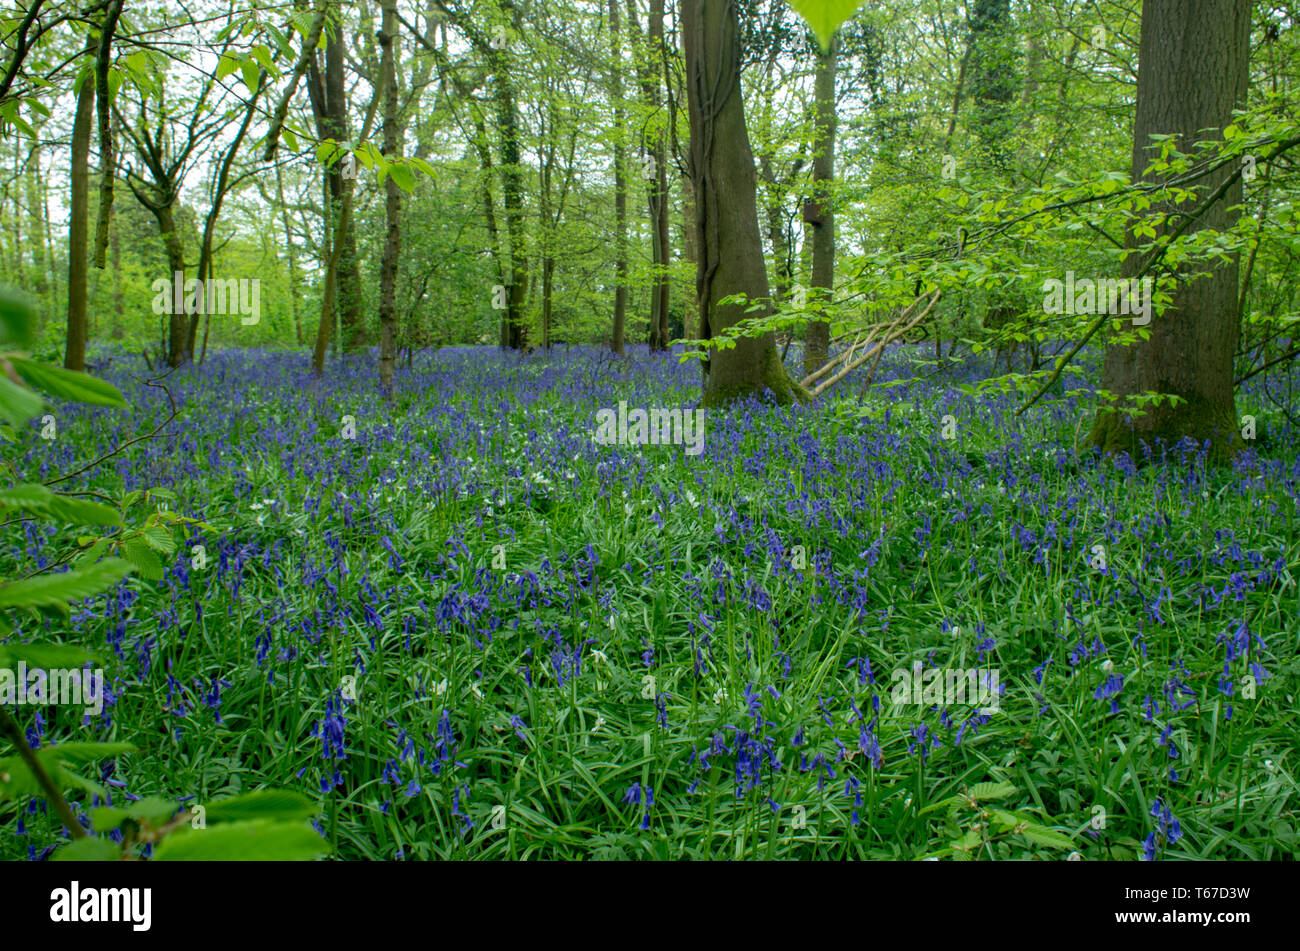 Bluebells (hyacinyhoid) float like a carpet over the woodland floor - Stock Image